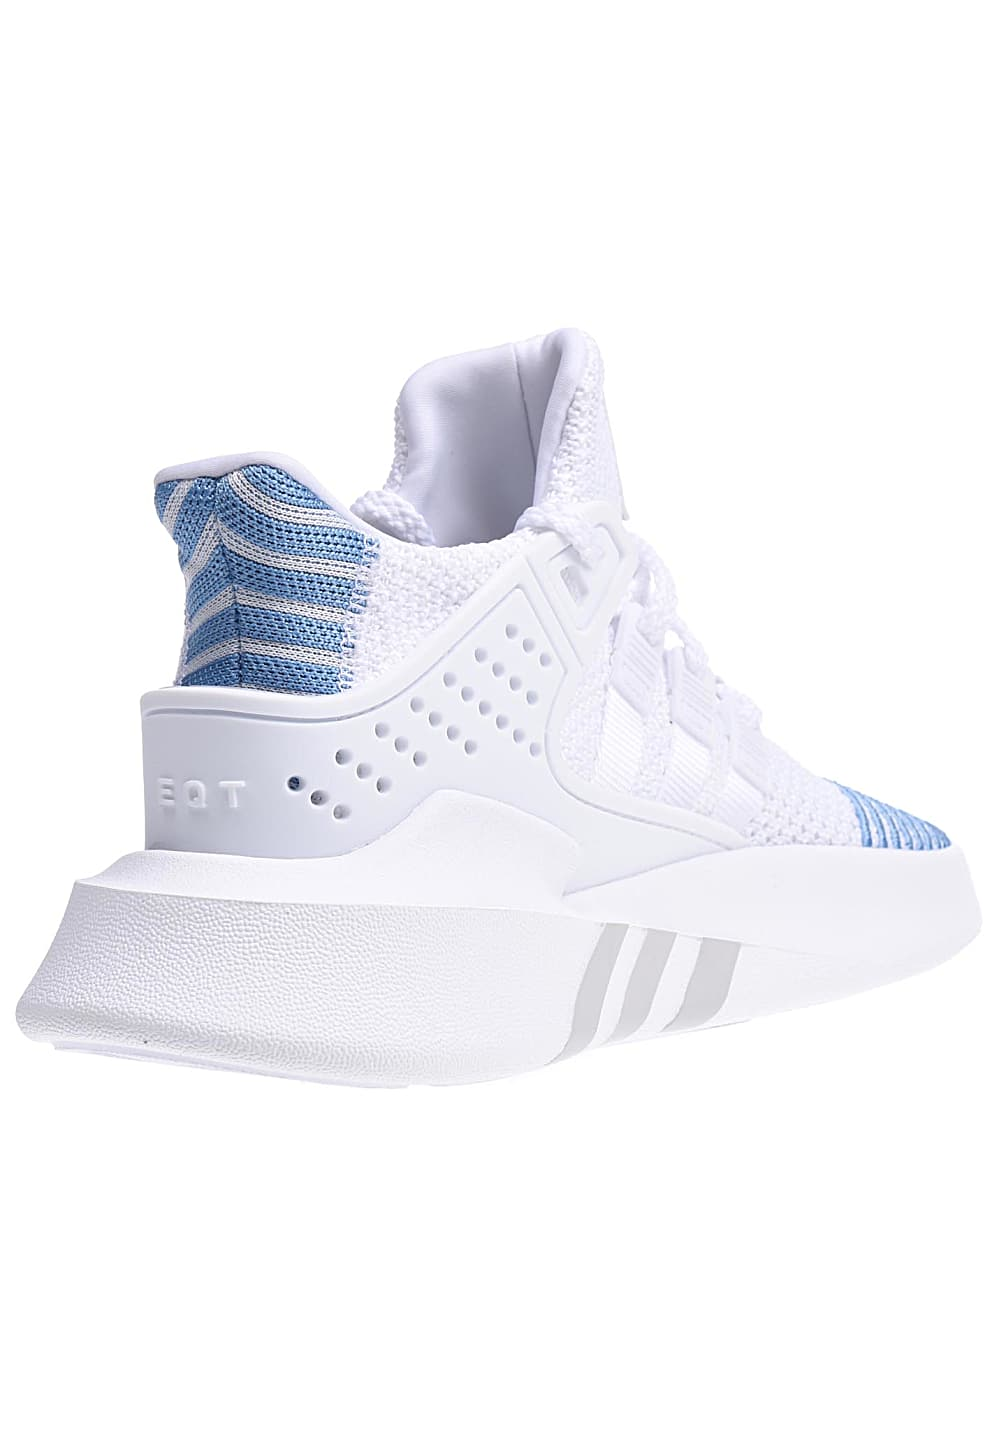 check out 4d666 797d4 Next. -20%. This product is currently out of stock. ADIDAS ORIGINALS. Eqt  Bask Adv - Sneakers for Women